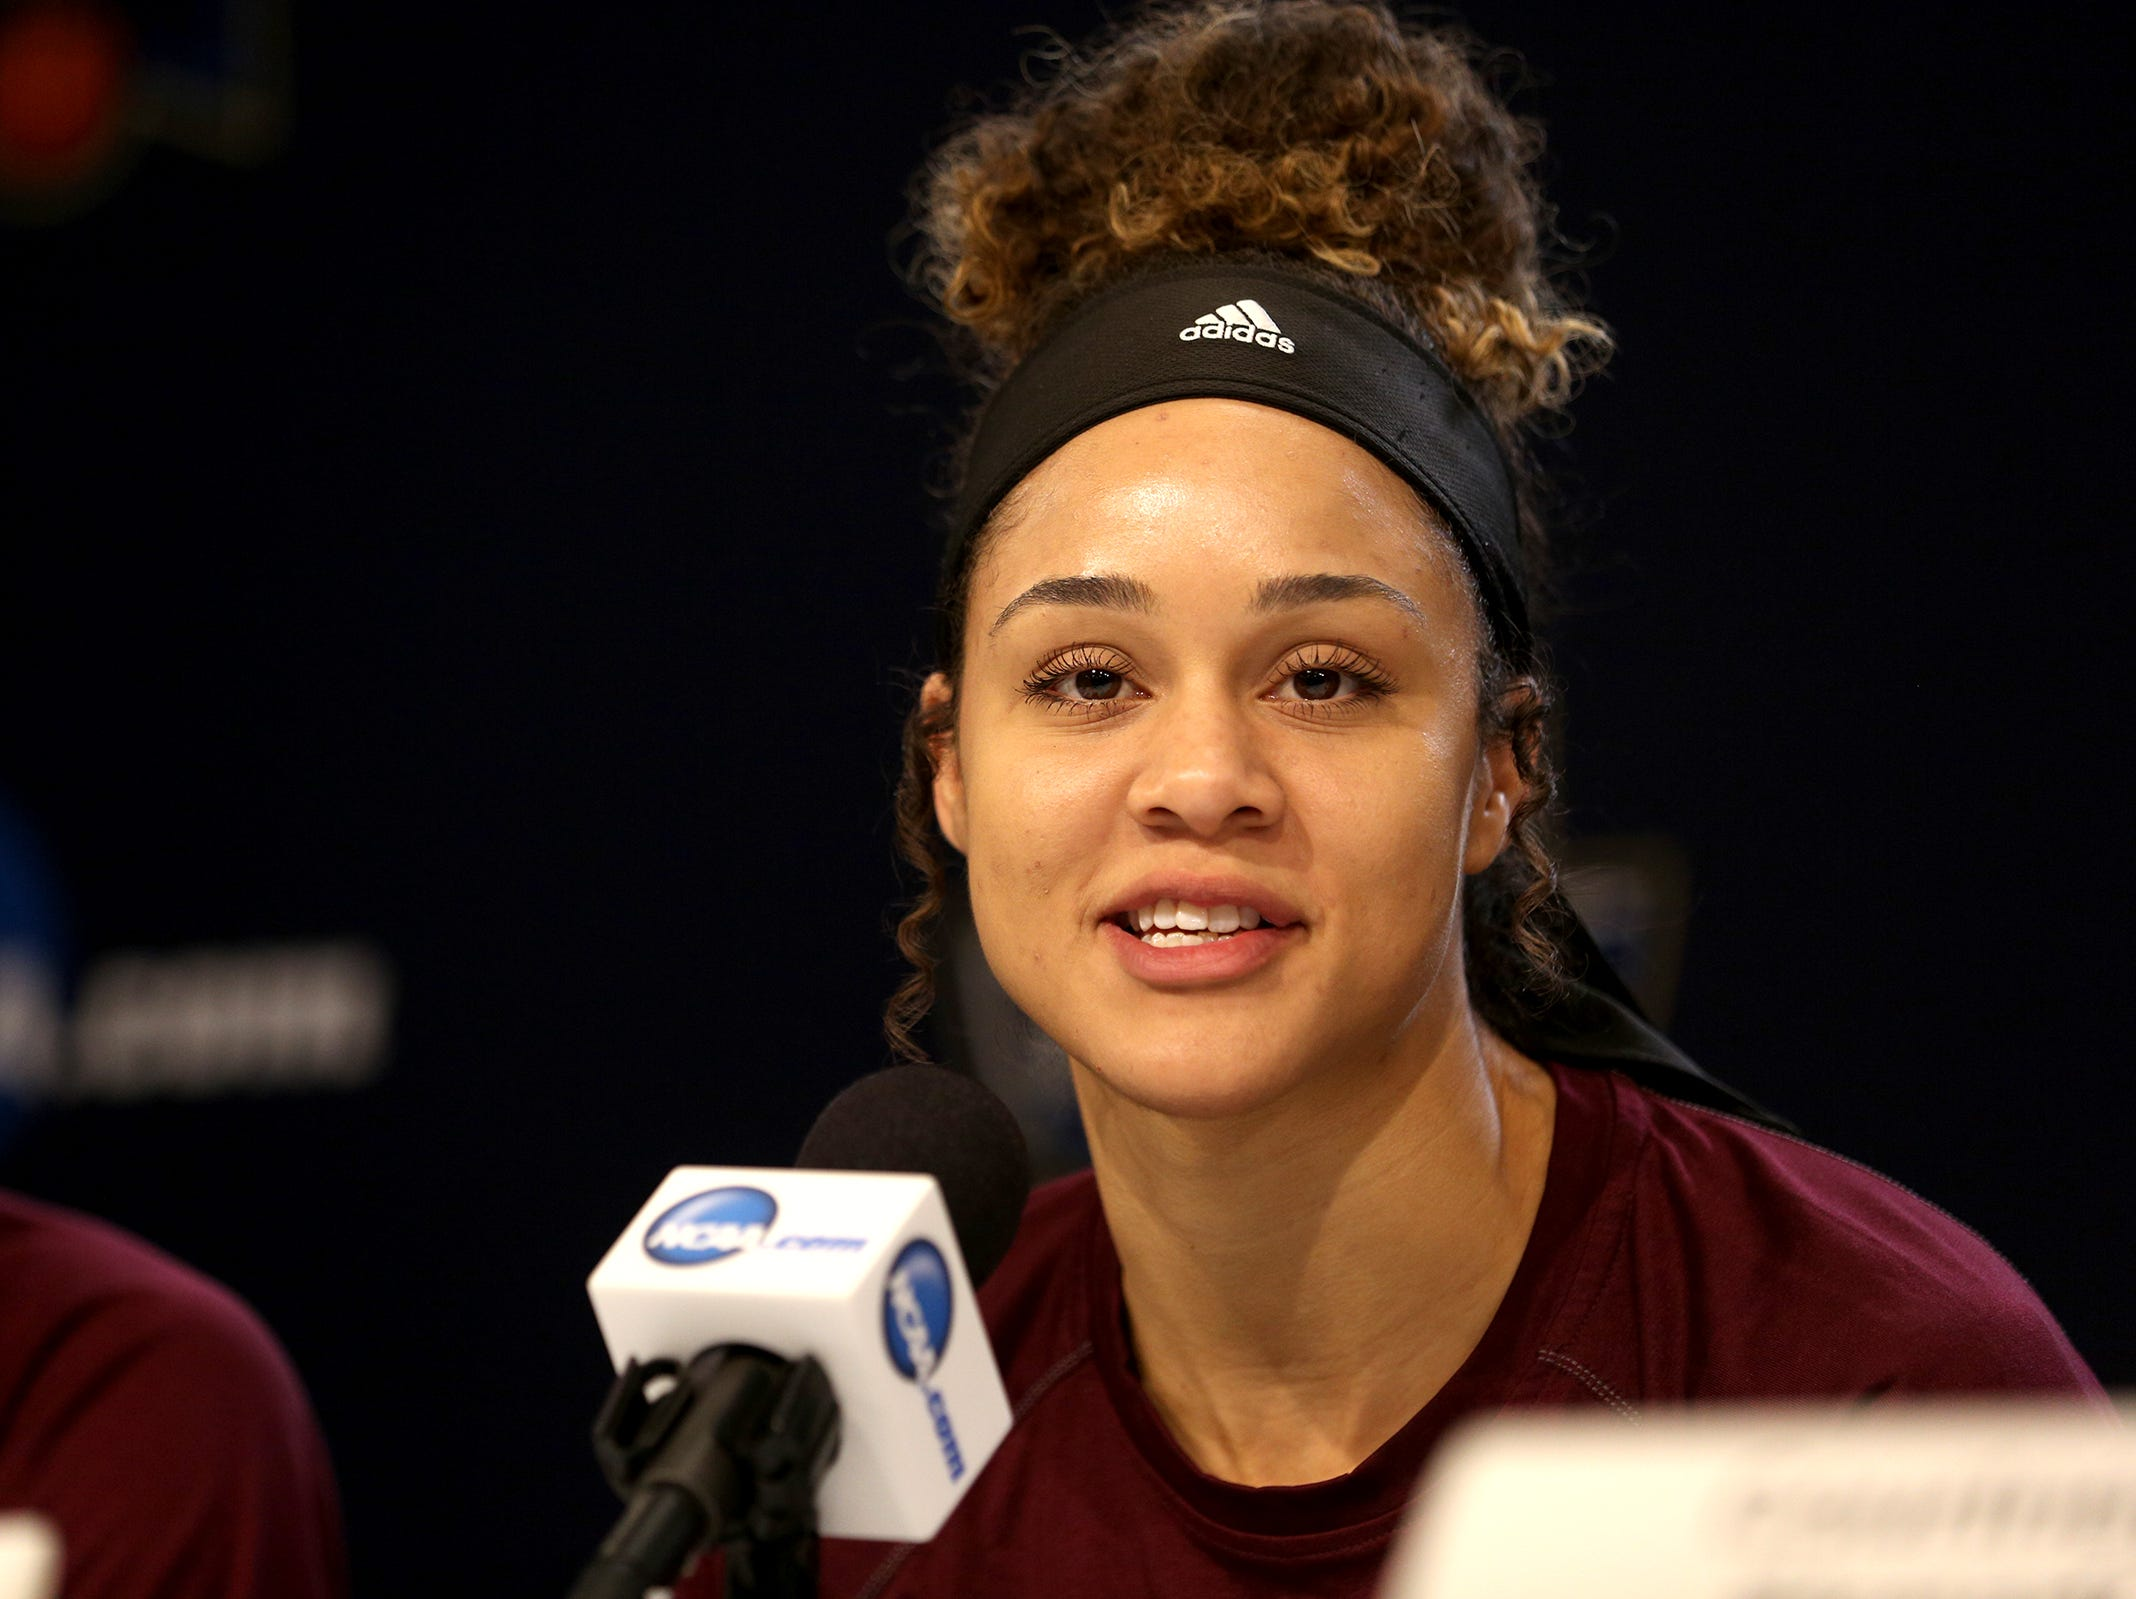 Arizona State University's forward Kianna Ibis answers questions during a press conference prior to the NCAA Women's Regional at the Moda Center in Portland on March 28, 2019.